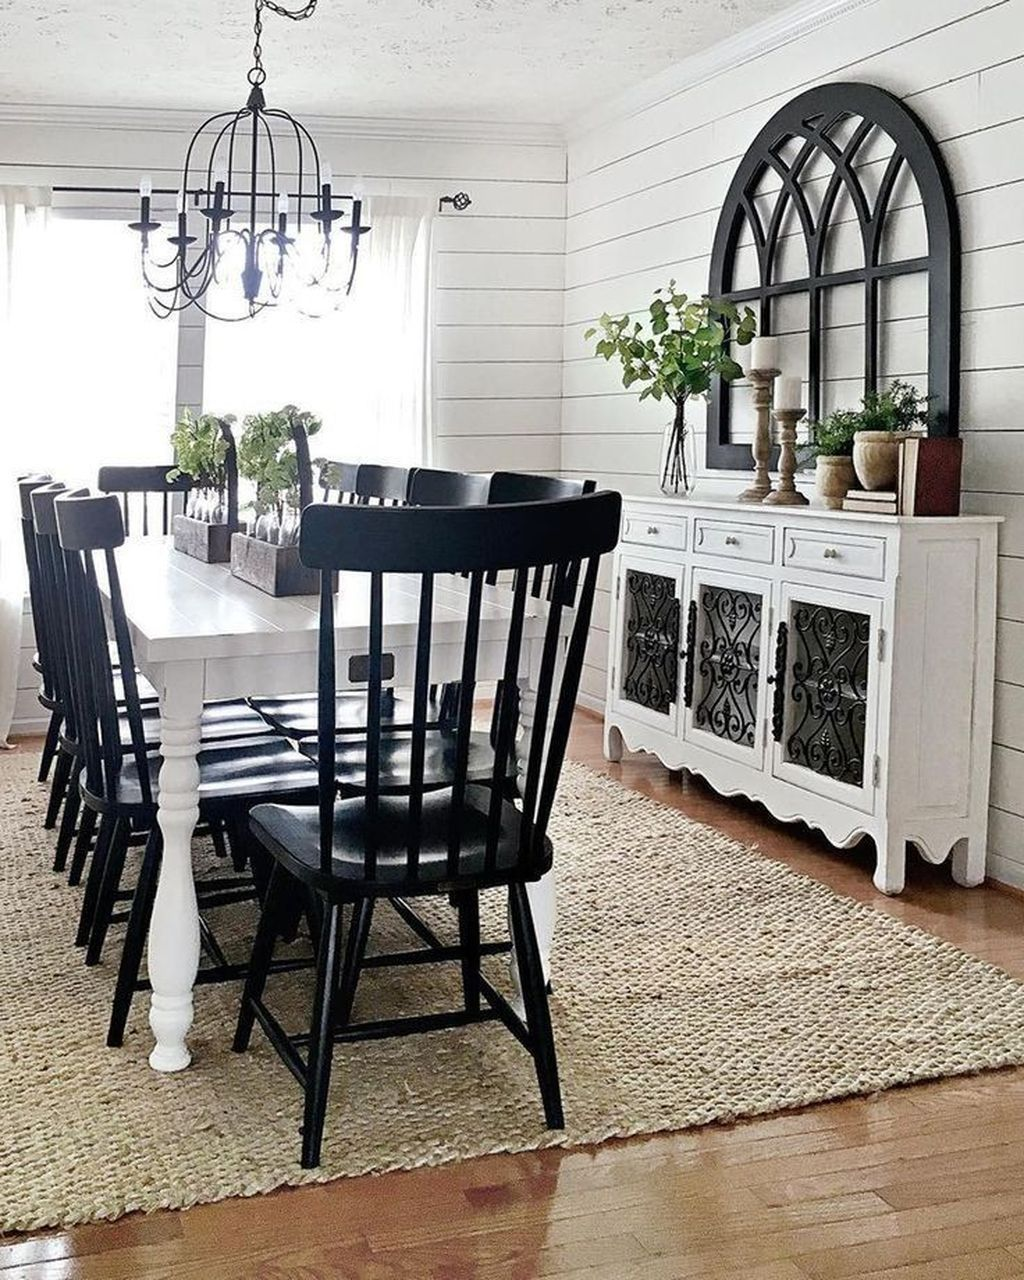 36 Lovely Farmhouse Black Table And Chair Design Ideas For Dining Room